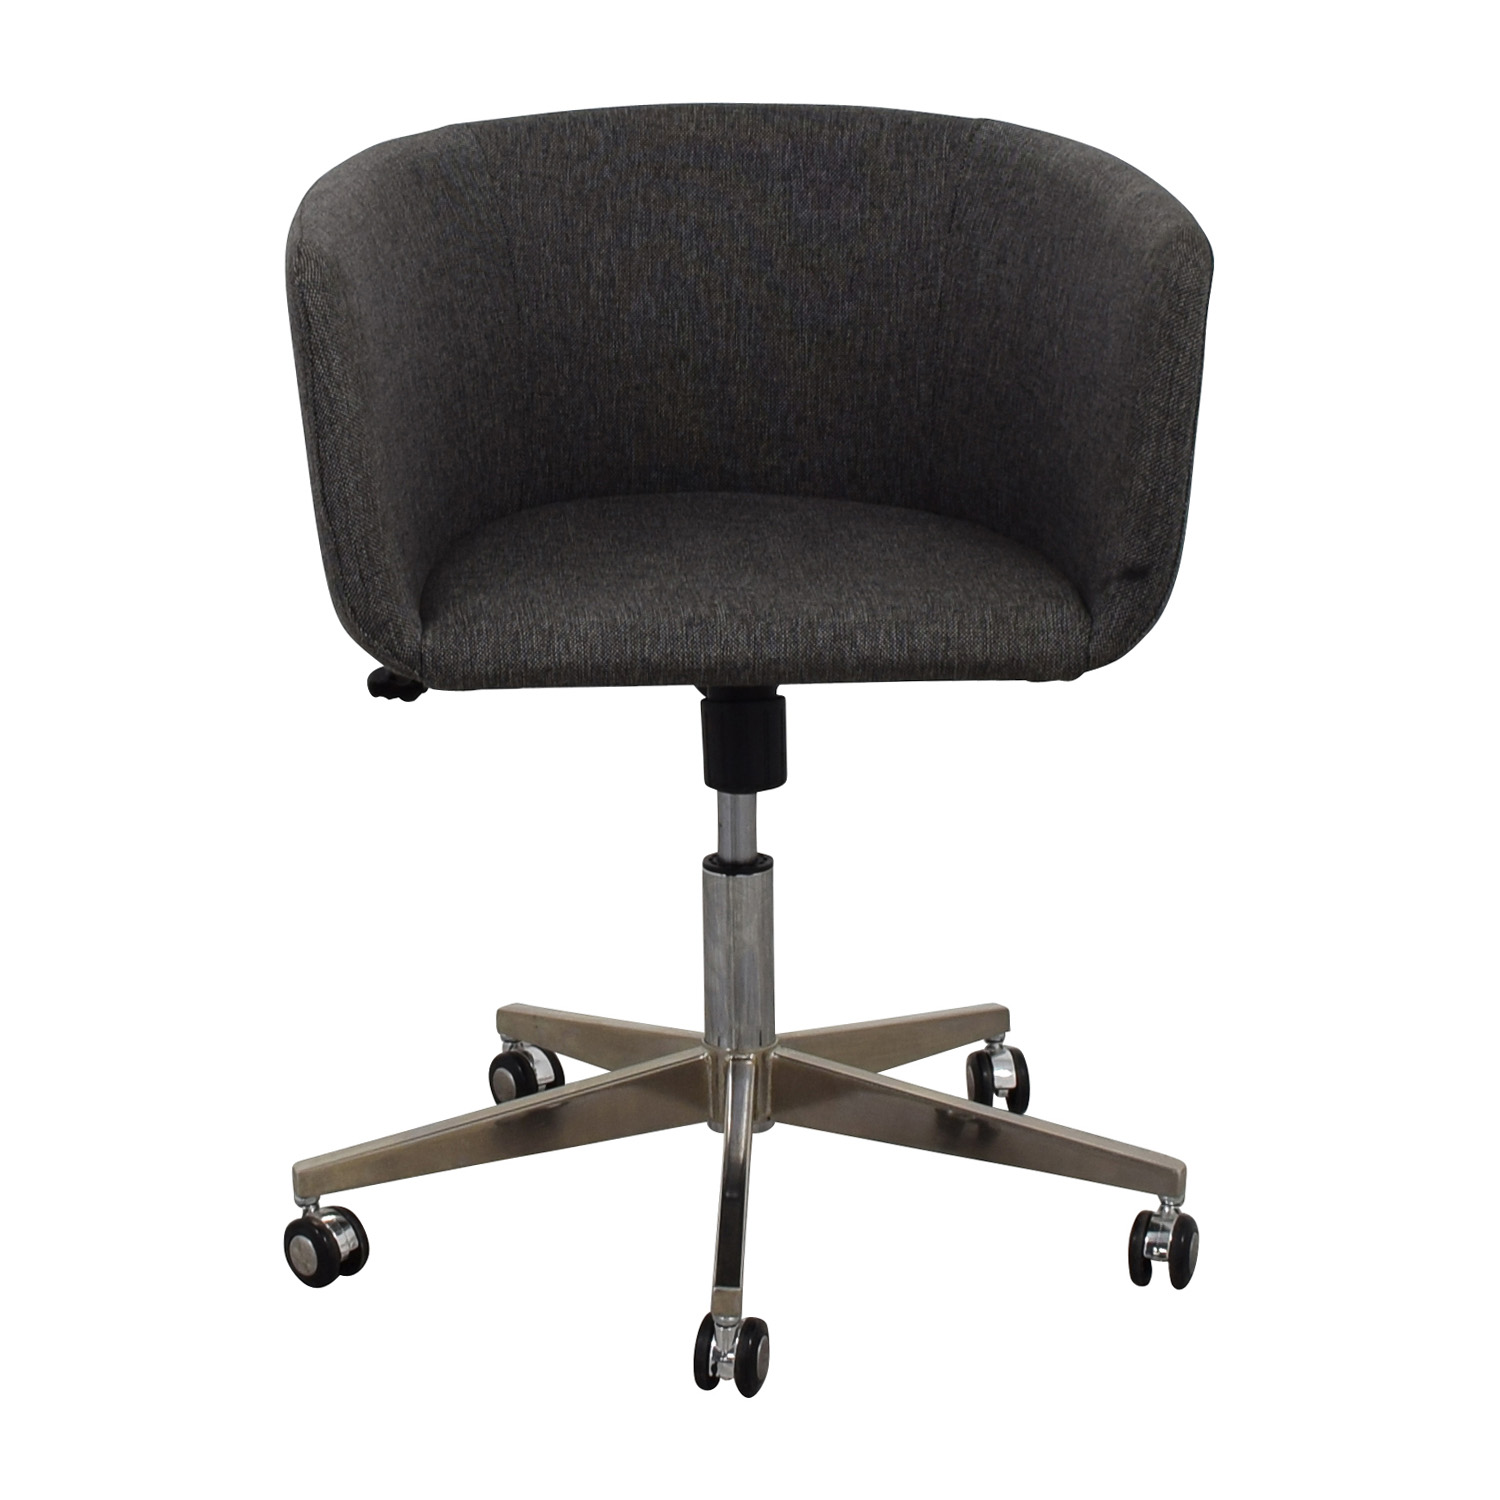 Modern Grey Office Chair with Chrome Wheels / Home Office Chairs